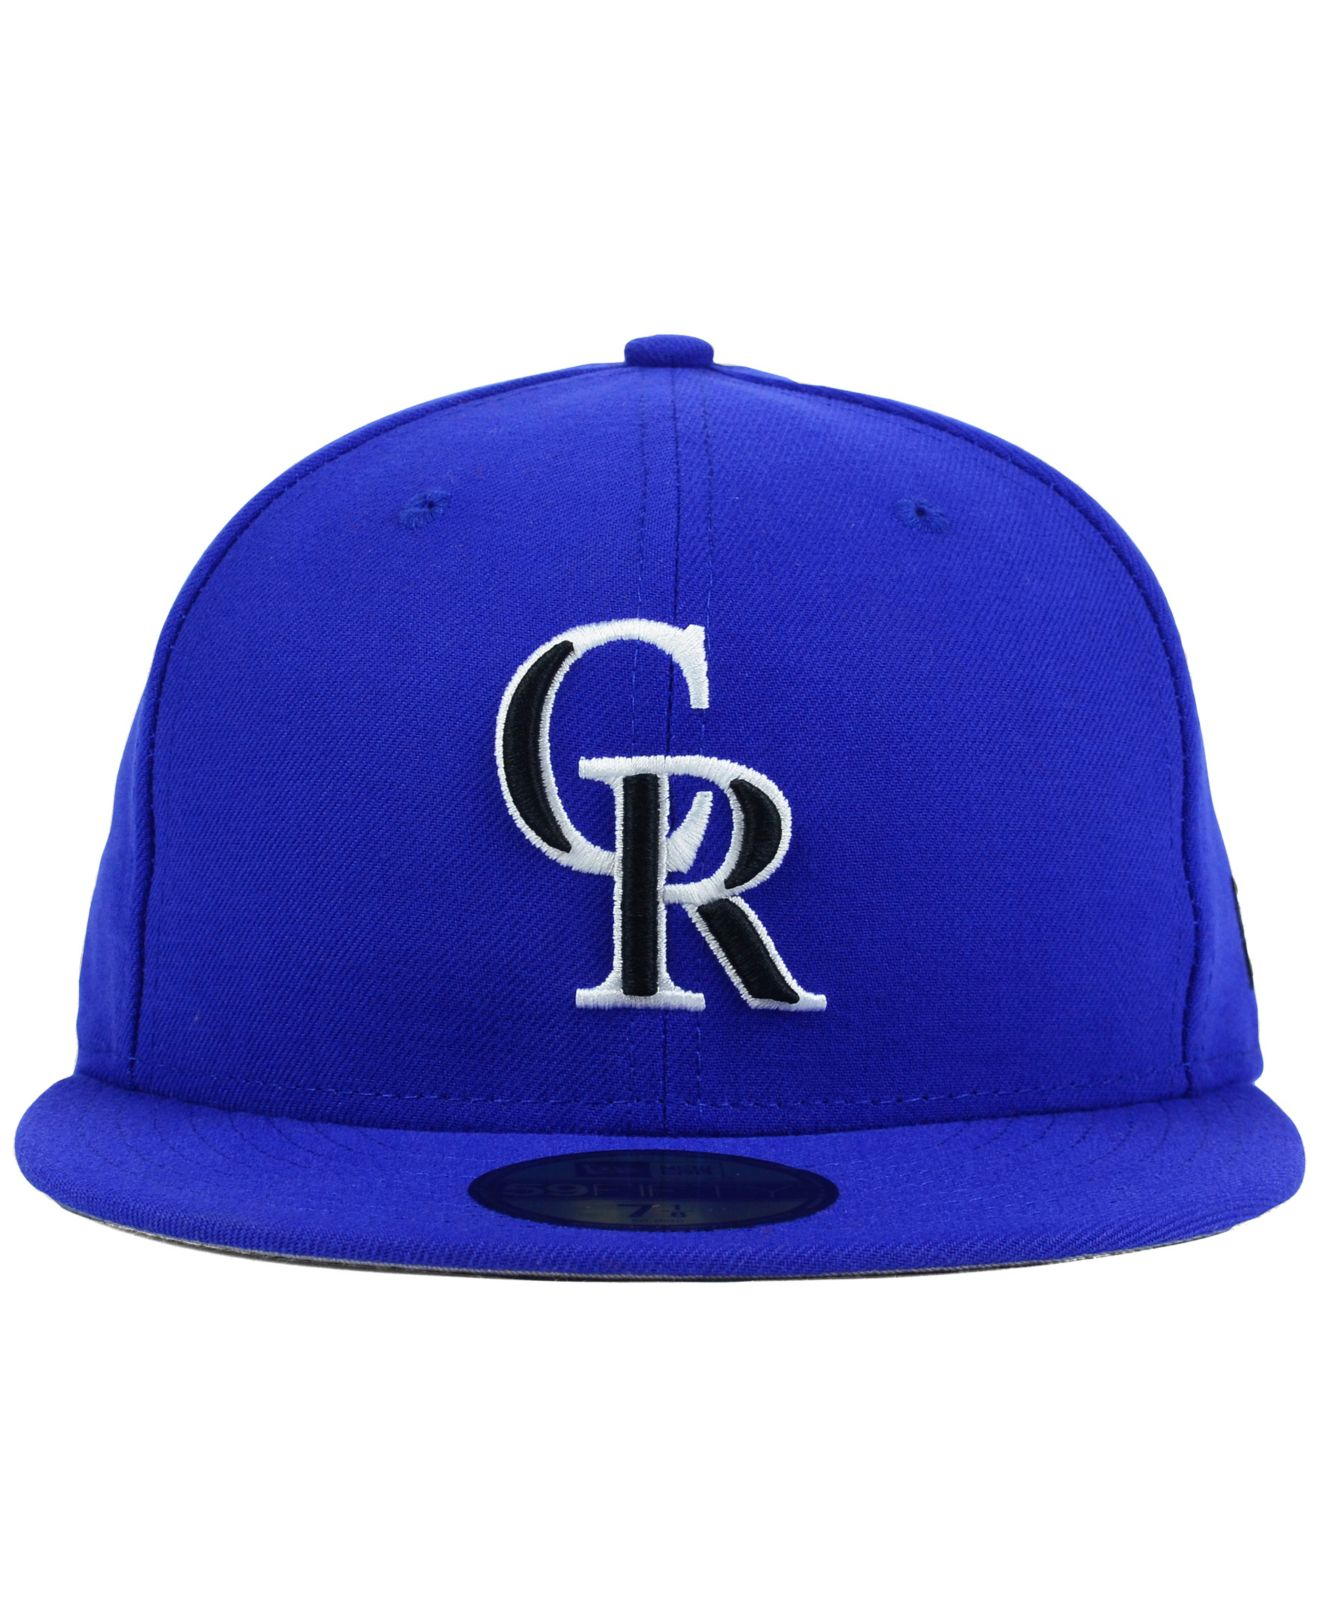 competitive price 6a30e 0af98 Lyst - KTZ Colorado Rockies C-Dub 59Fifty Cap in Blue for Men